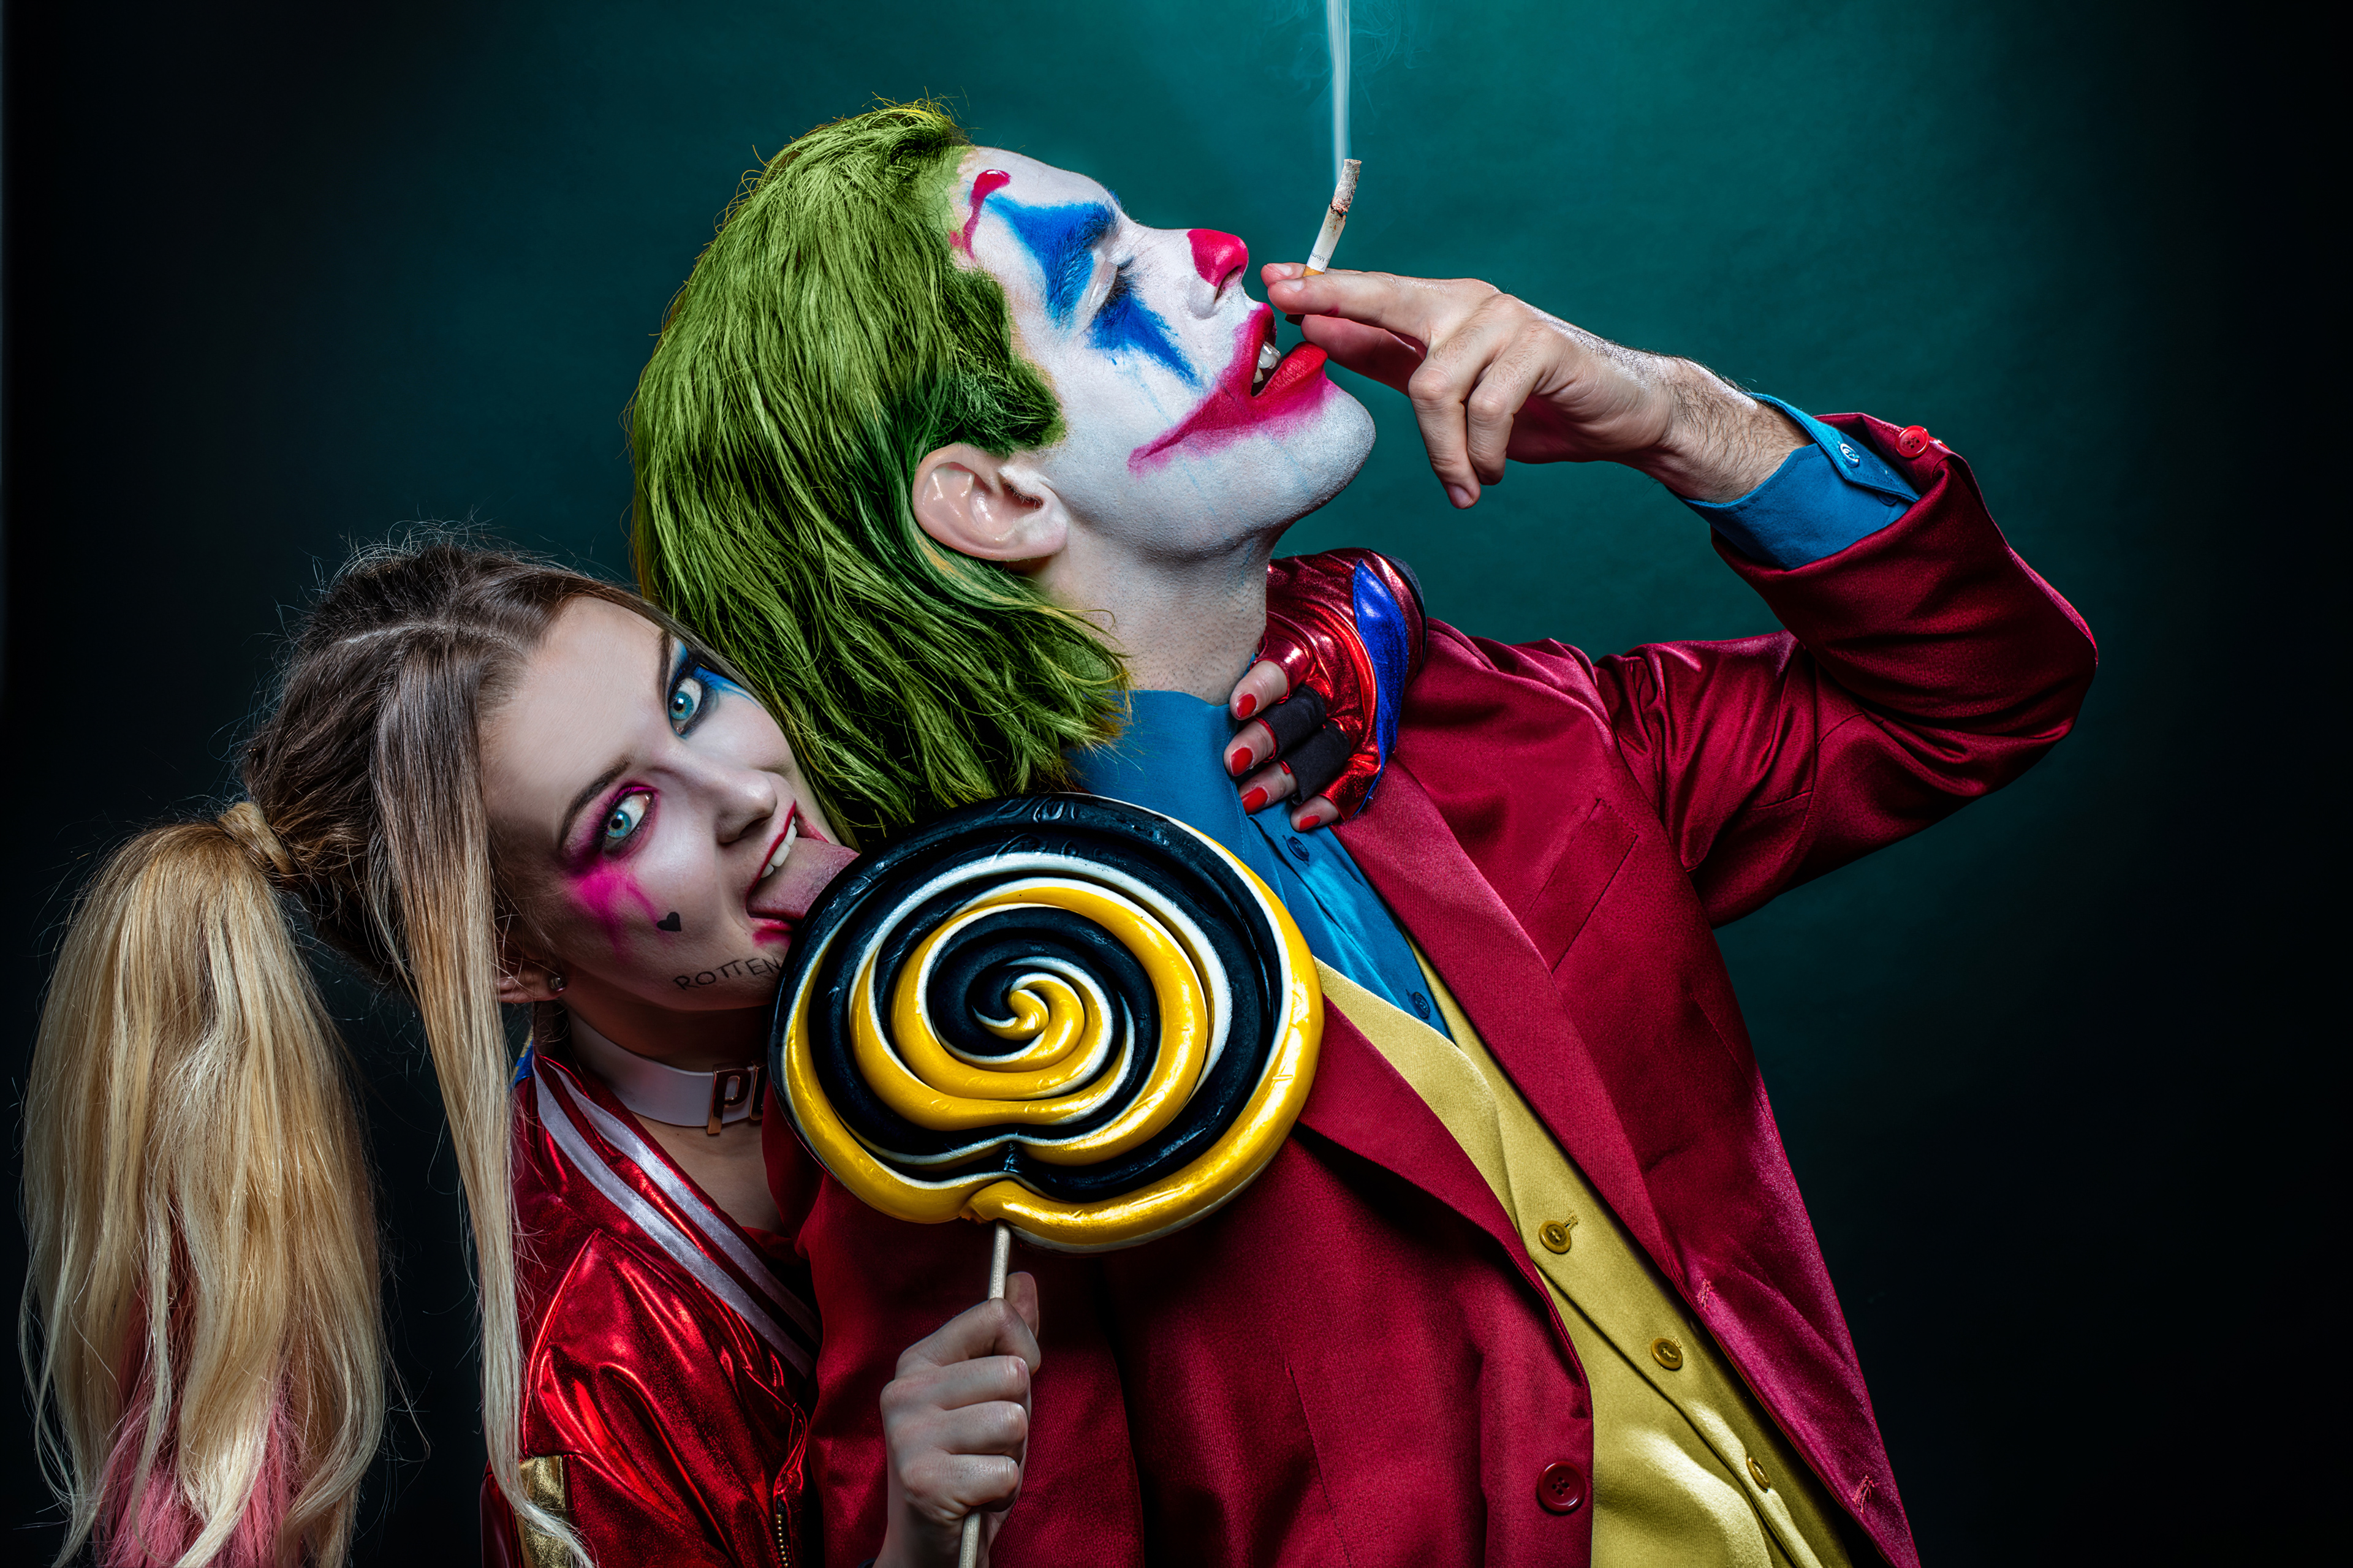 Joker And Harley Quinn Cosplay 4k, HD